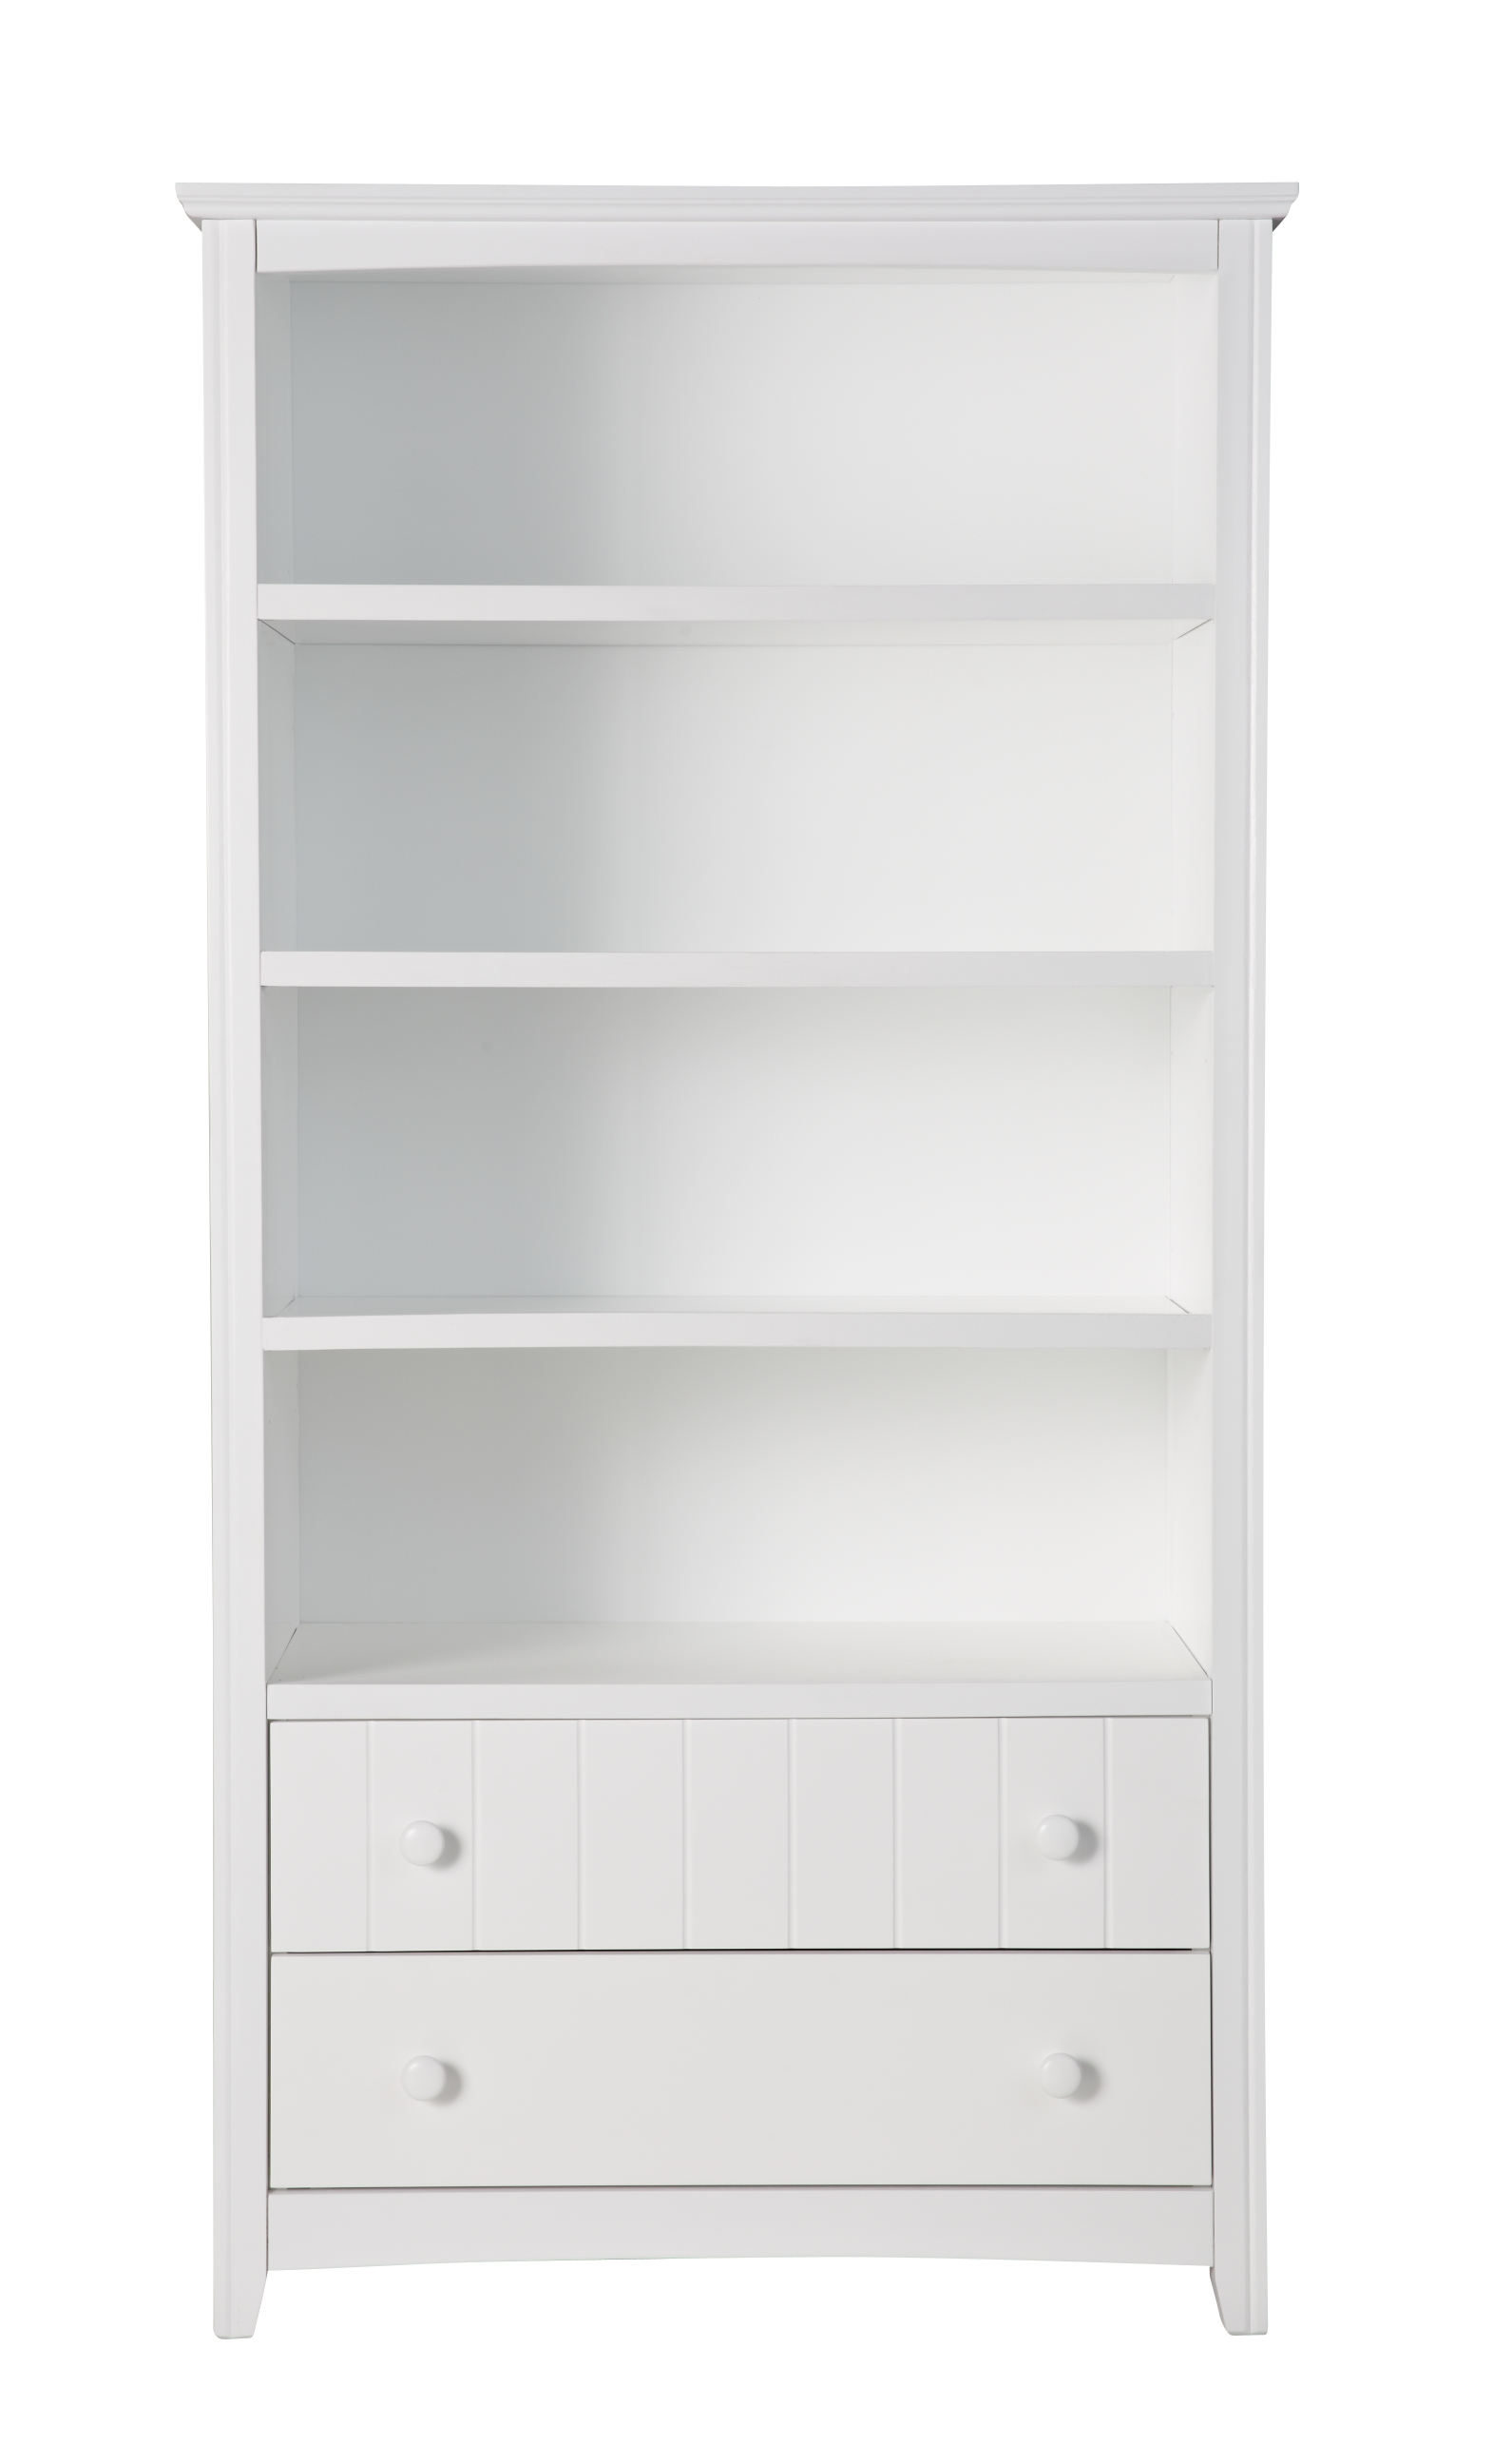 bookcase white pin glass towards i thinking with m veneer this doors birch bookshelf bookshelves drawers ikea valbo billy leaning the vs